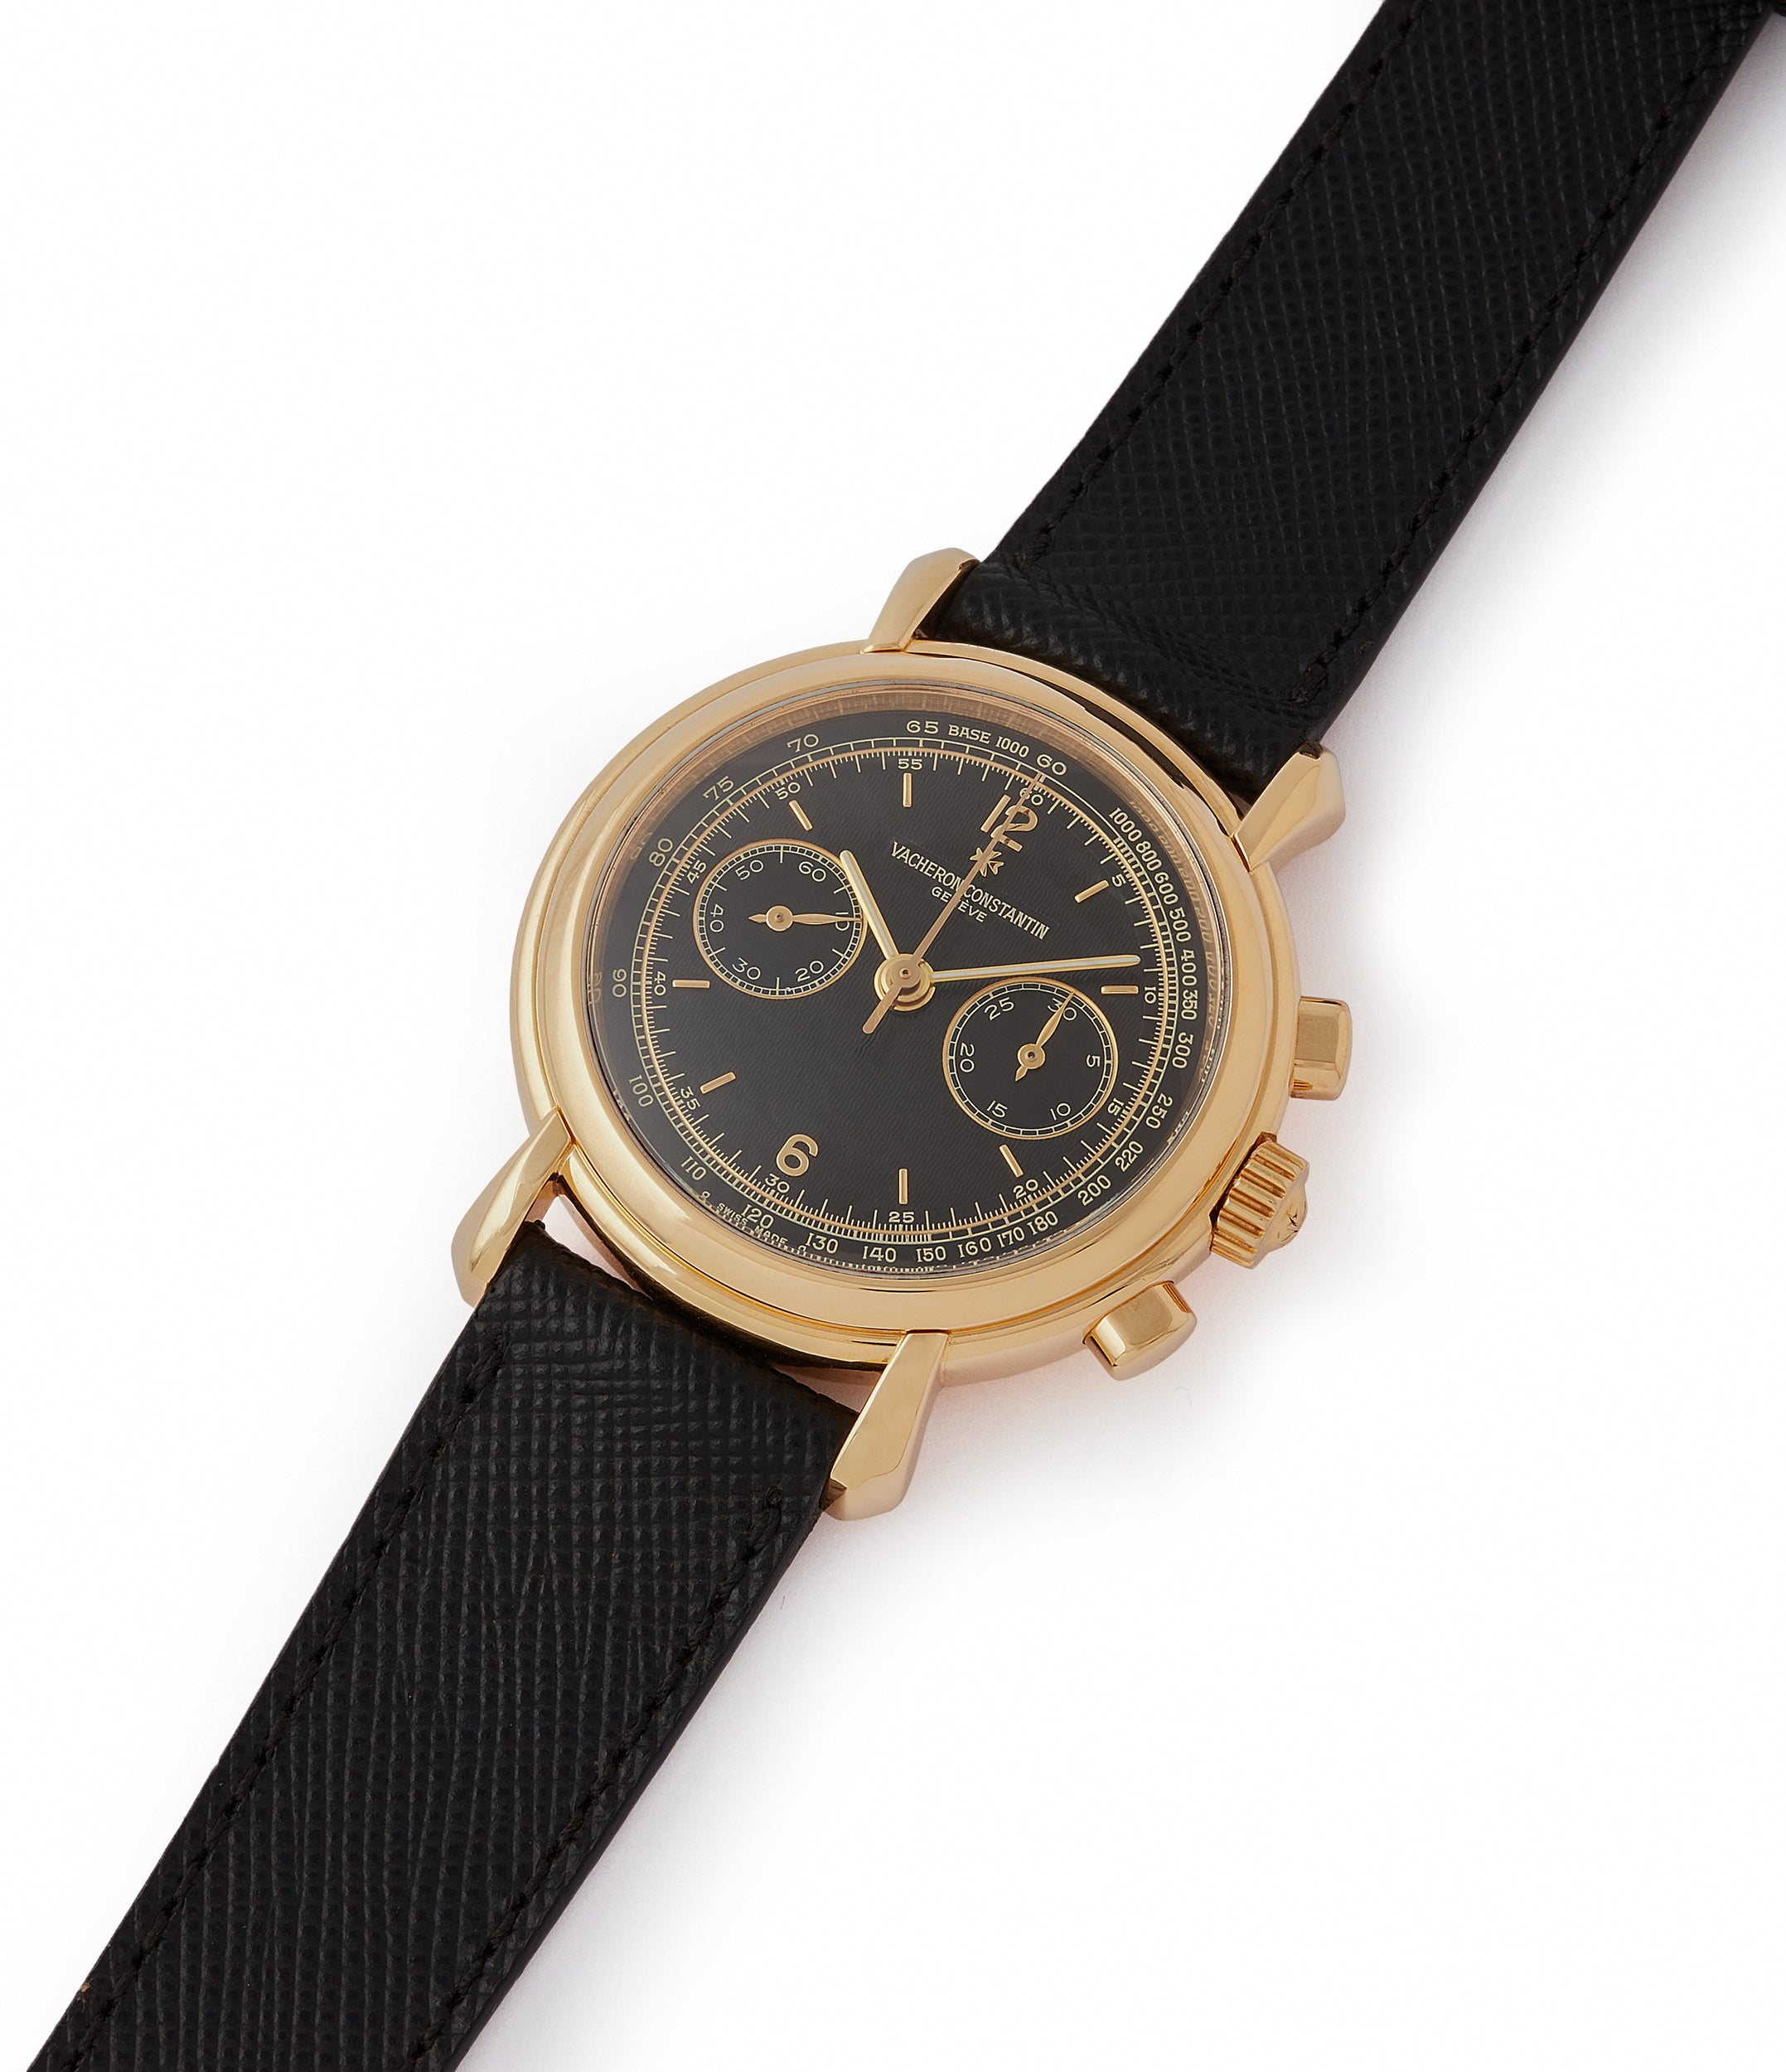 selling Vacheron Constantin Les Historiques Chronograph 47101/4 yellow gold black dial pre-owned manual-winding watch for sale online at A Collected Man London UK specialist of rare watches